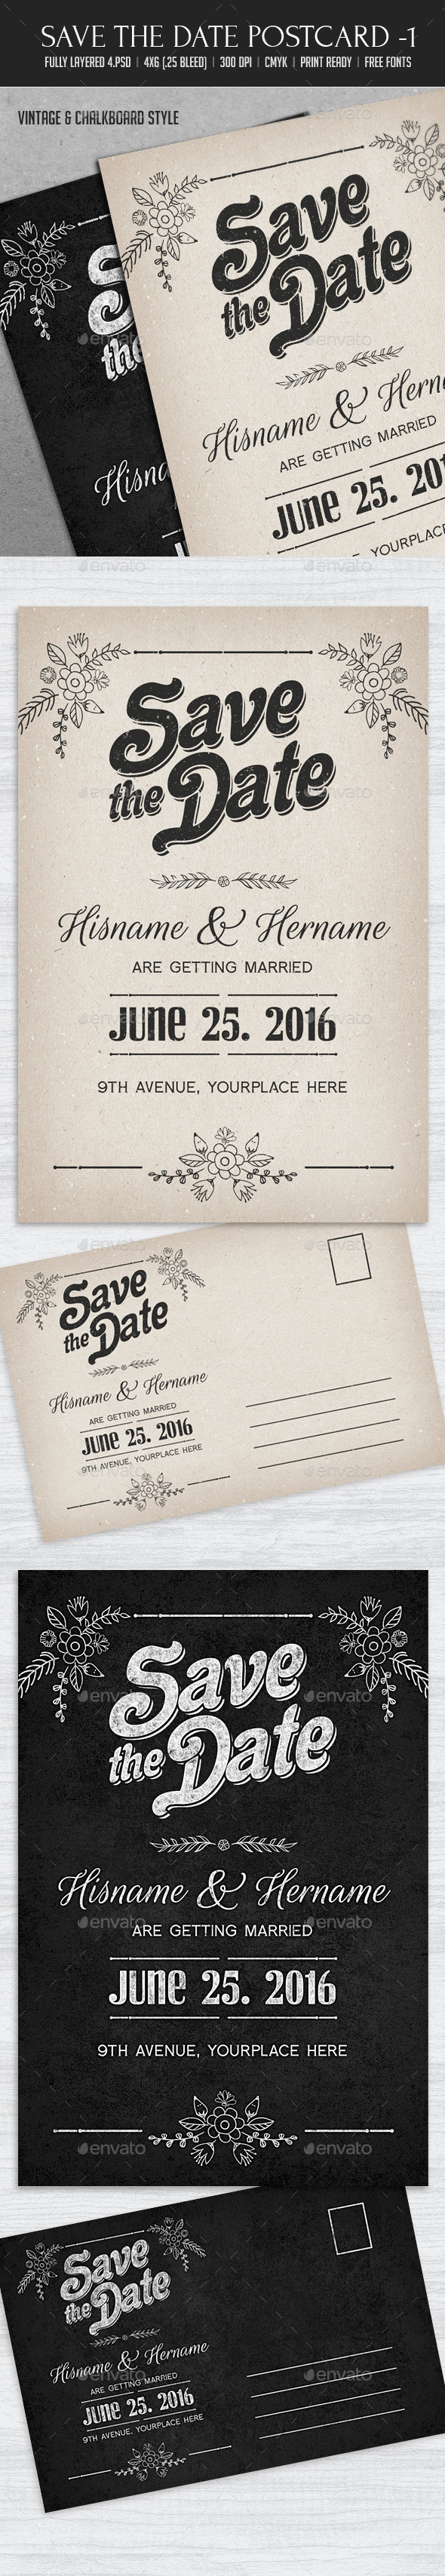 GraphicRiver Save The Date Postcard 1 10718736